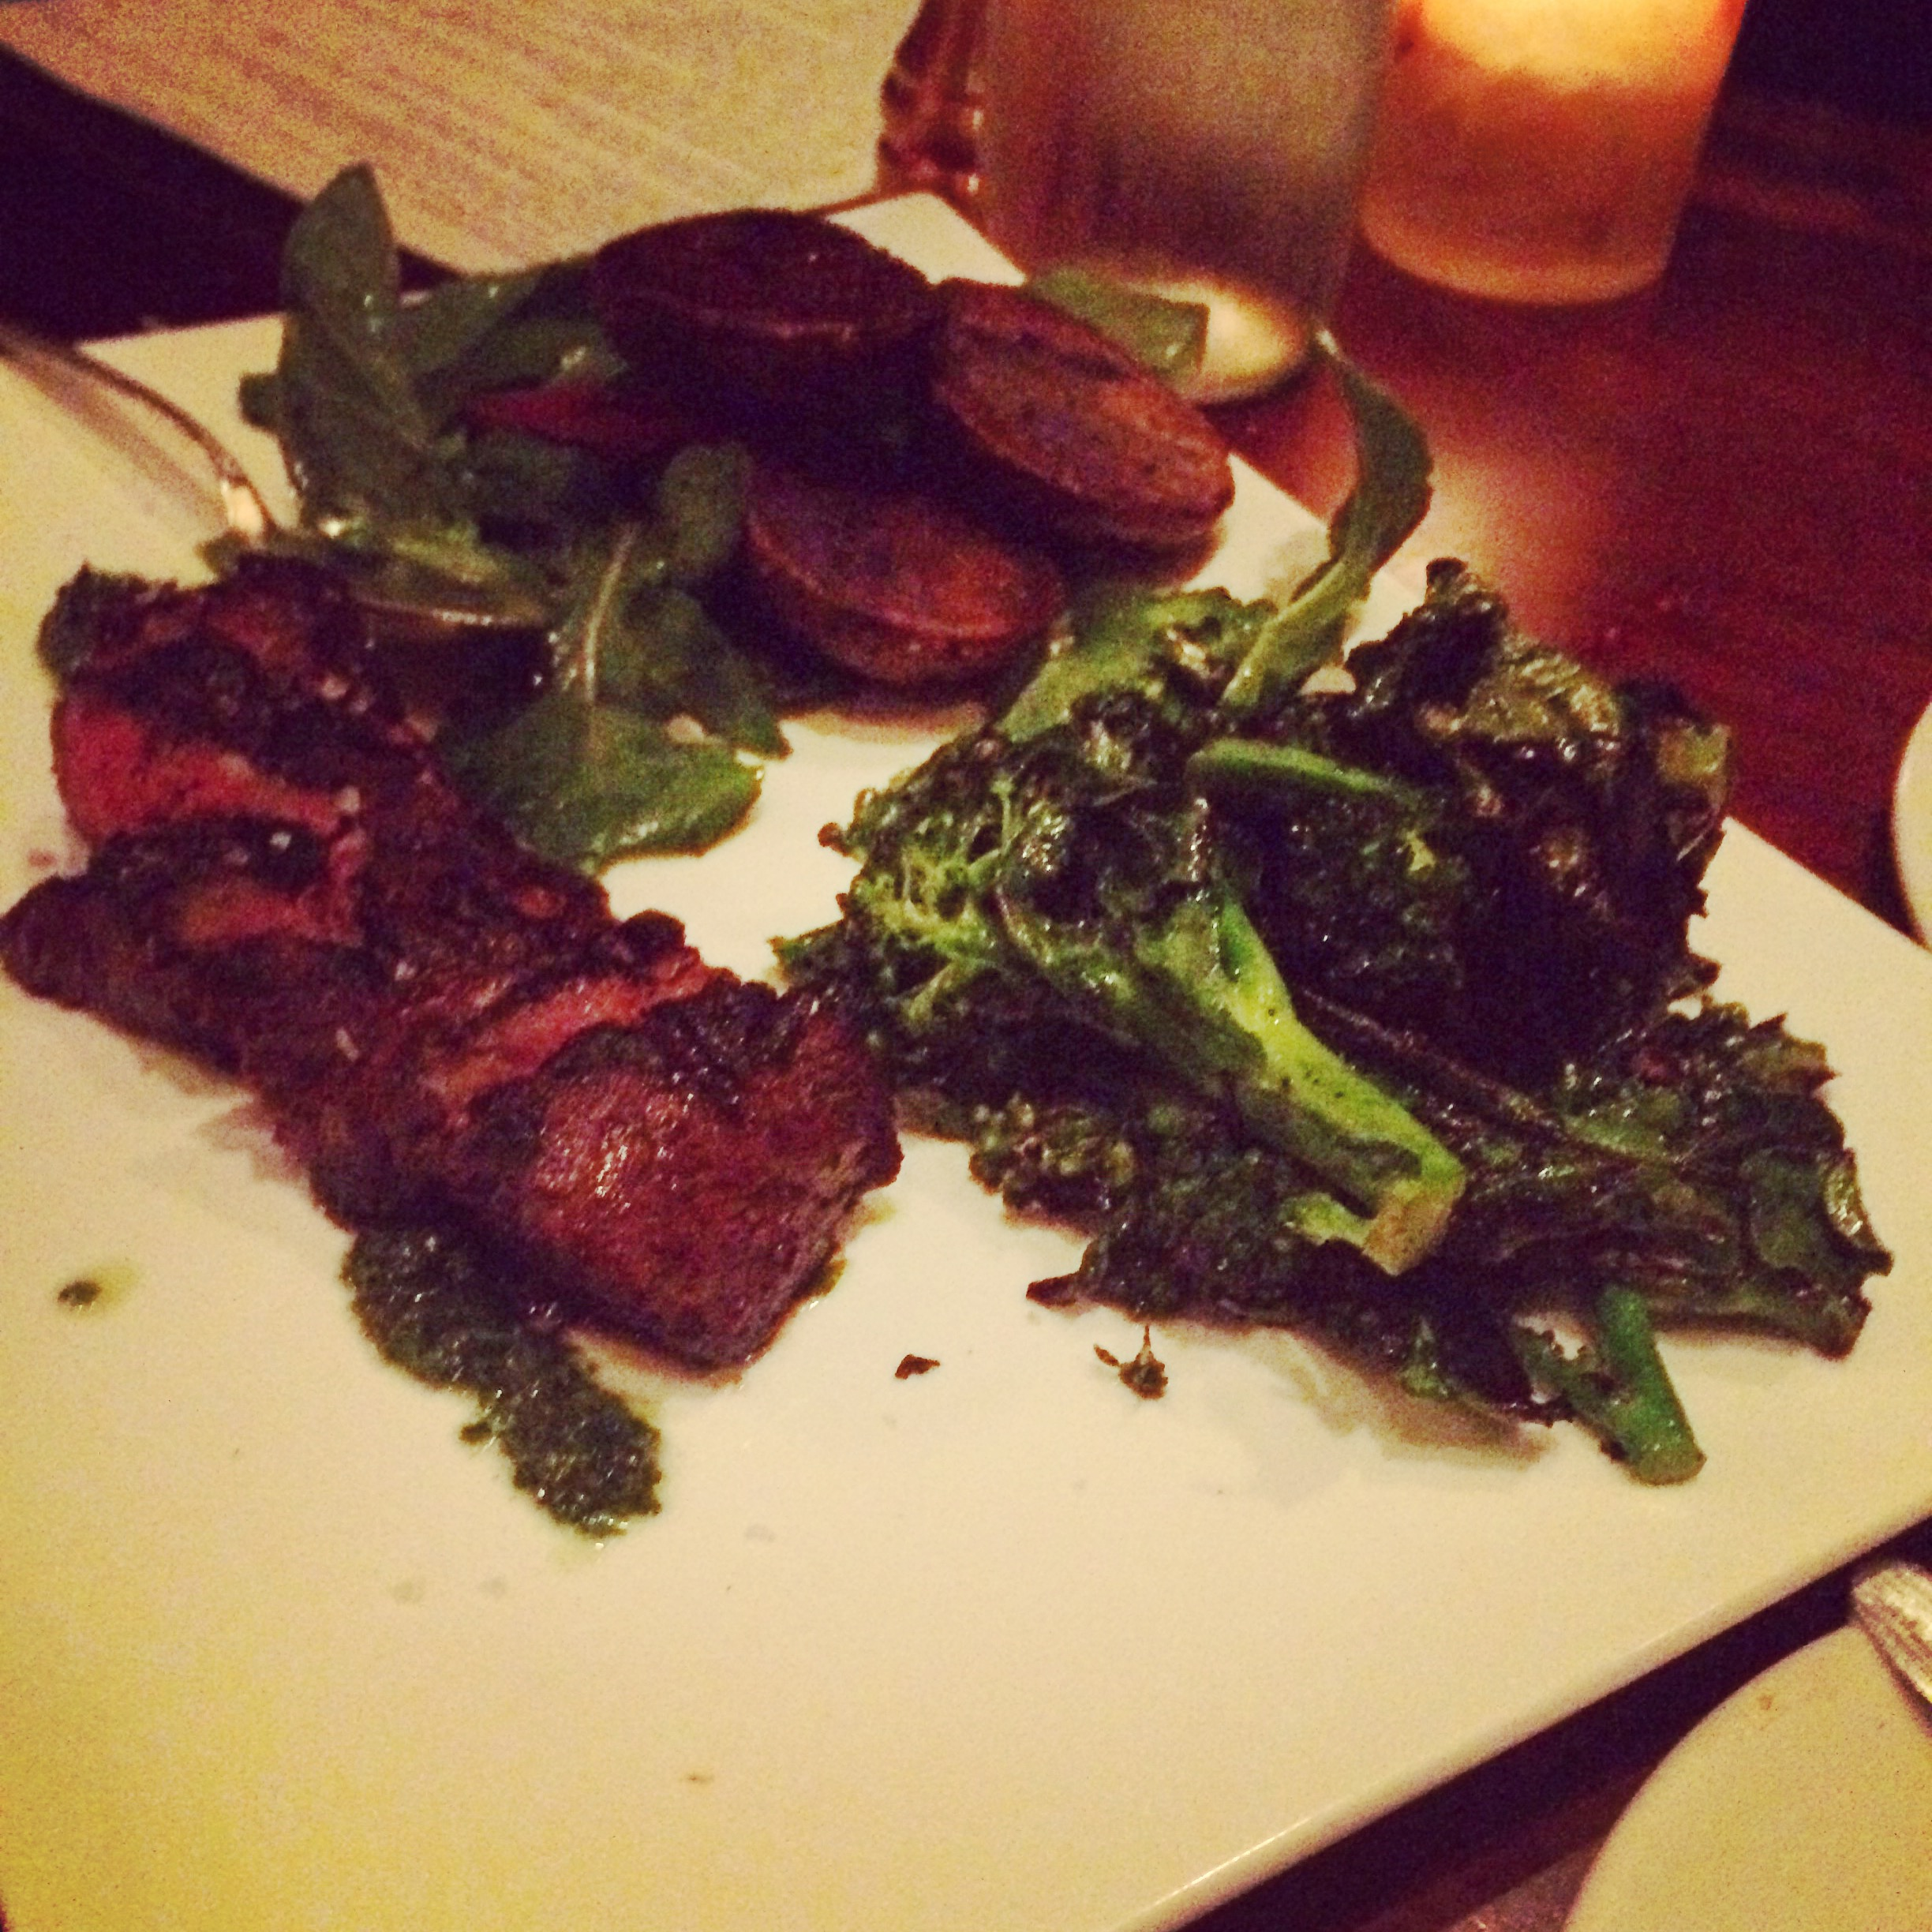 Seven Hills (Nob Hill) - Flat Iron Steak